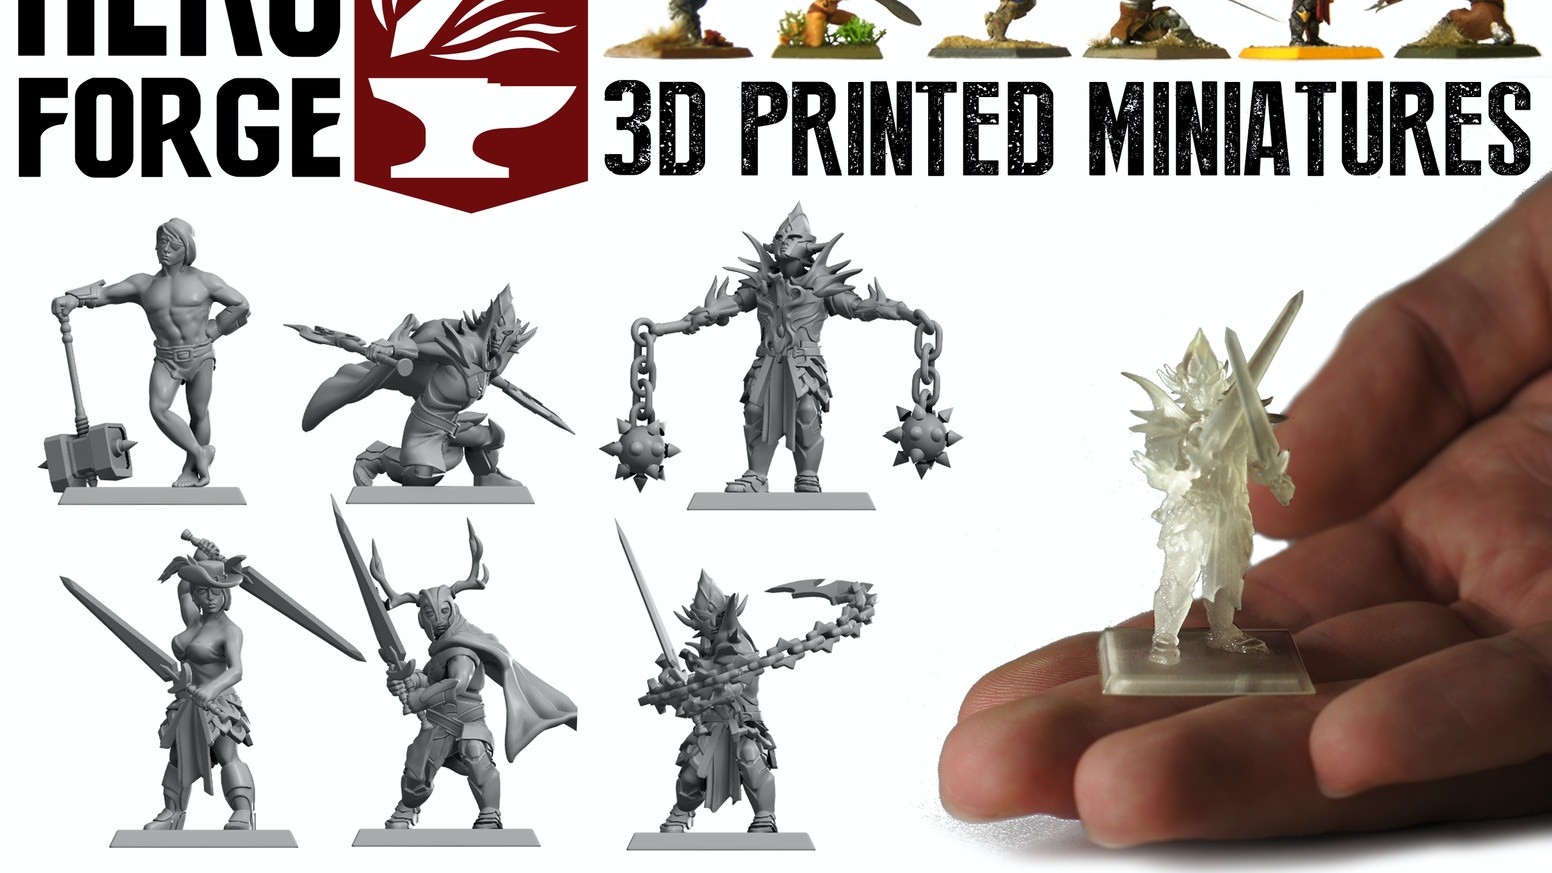 Customizable 3D Printed Tabletop Miniatures by Hero Forge